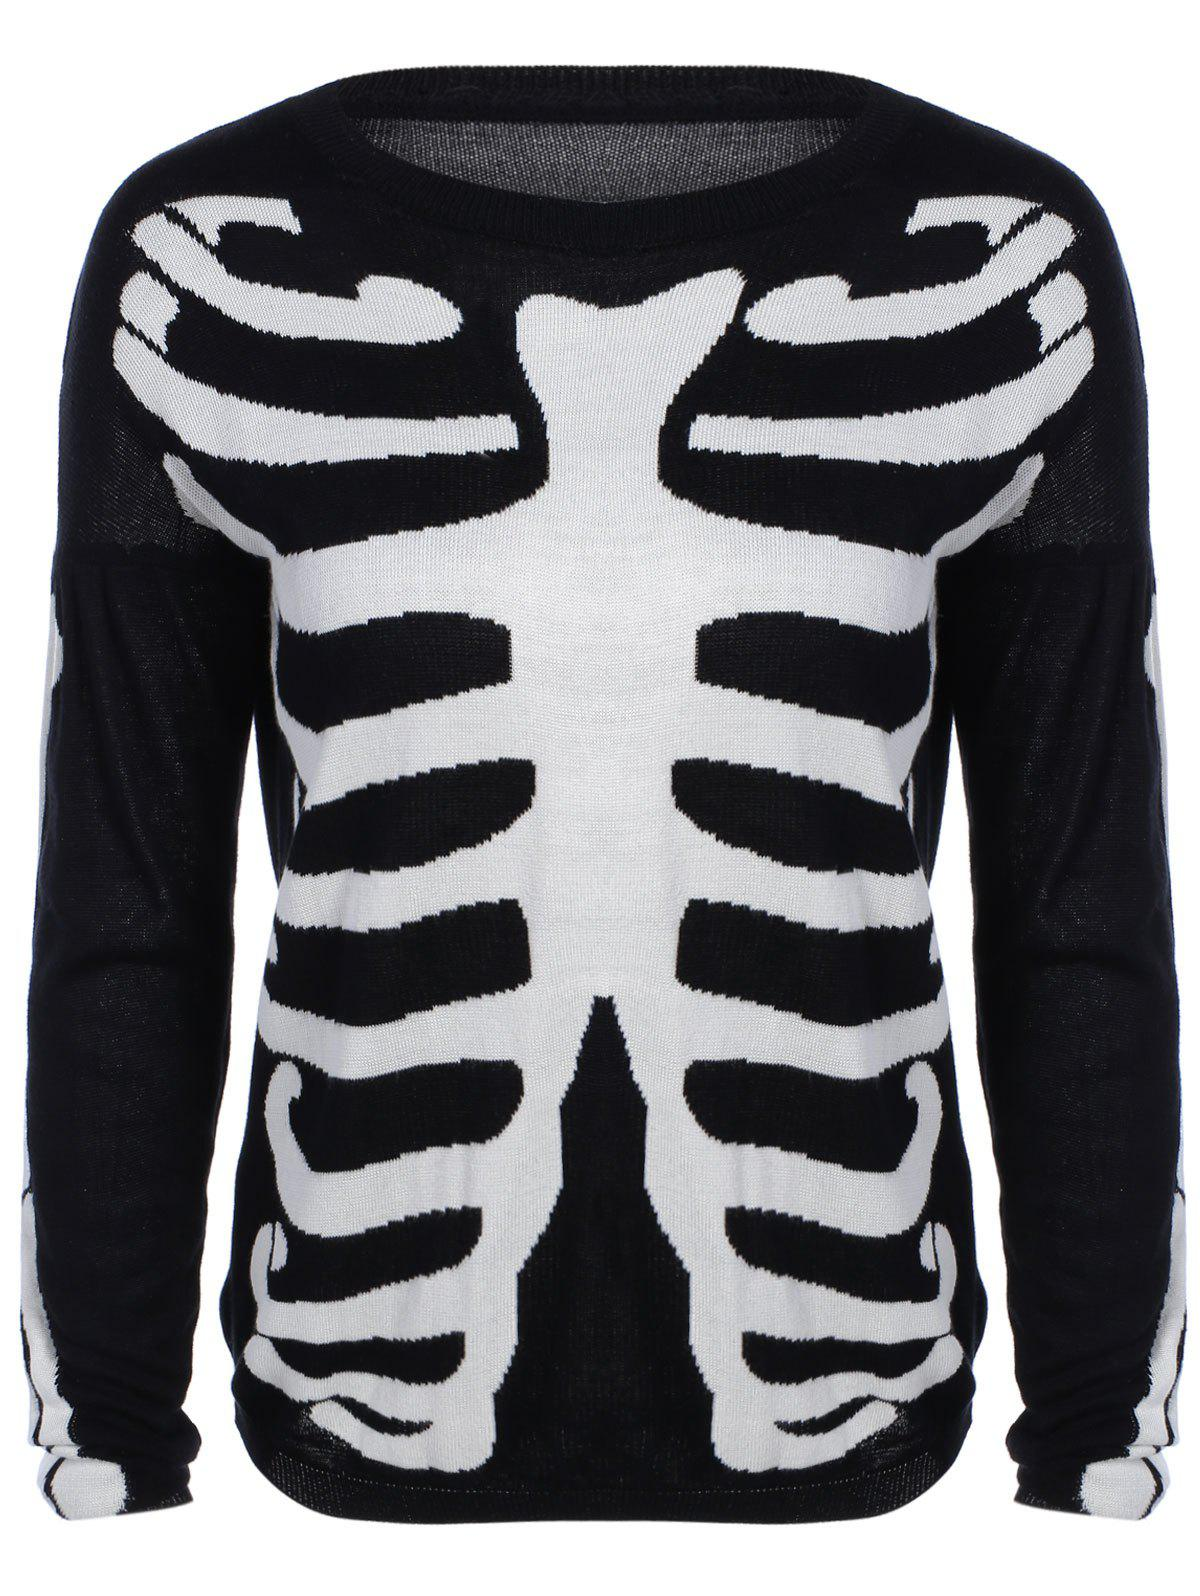 Long Sleeve Skeleton Print Sweater - BLACK L